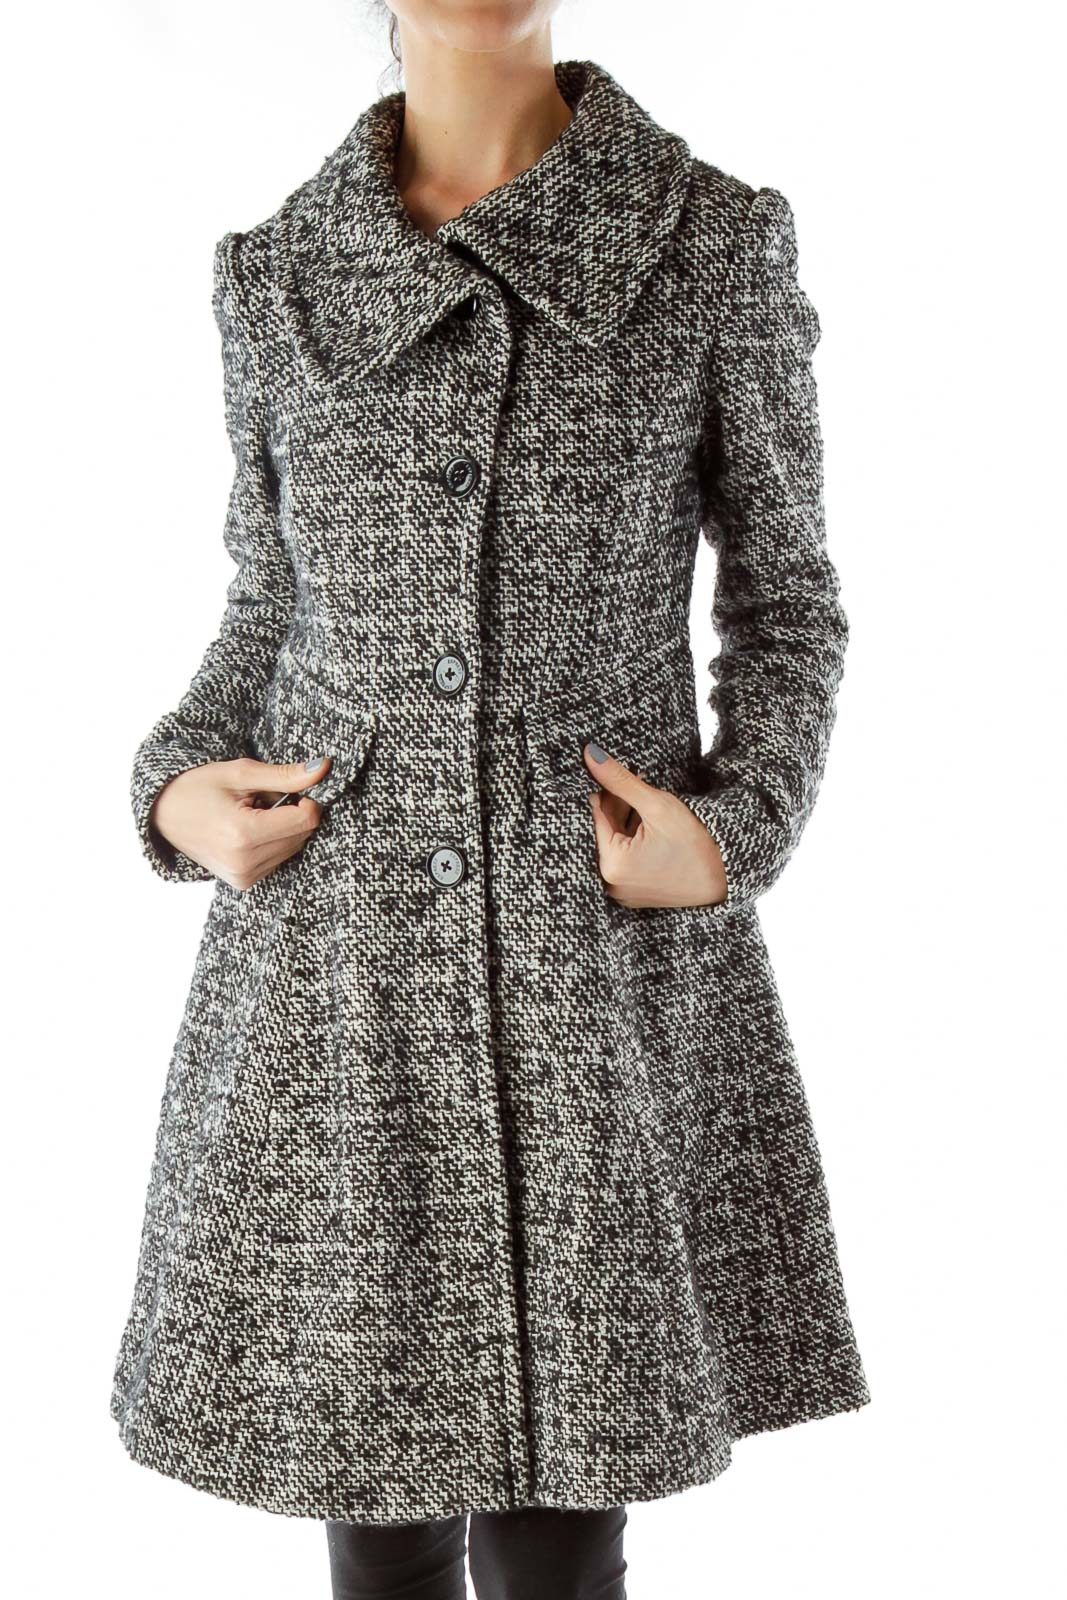 Black White Tweed Pea Coat